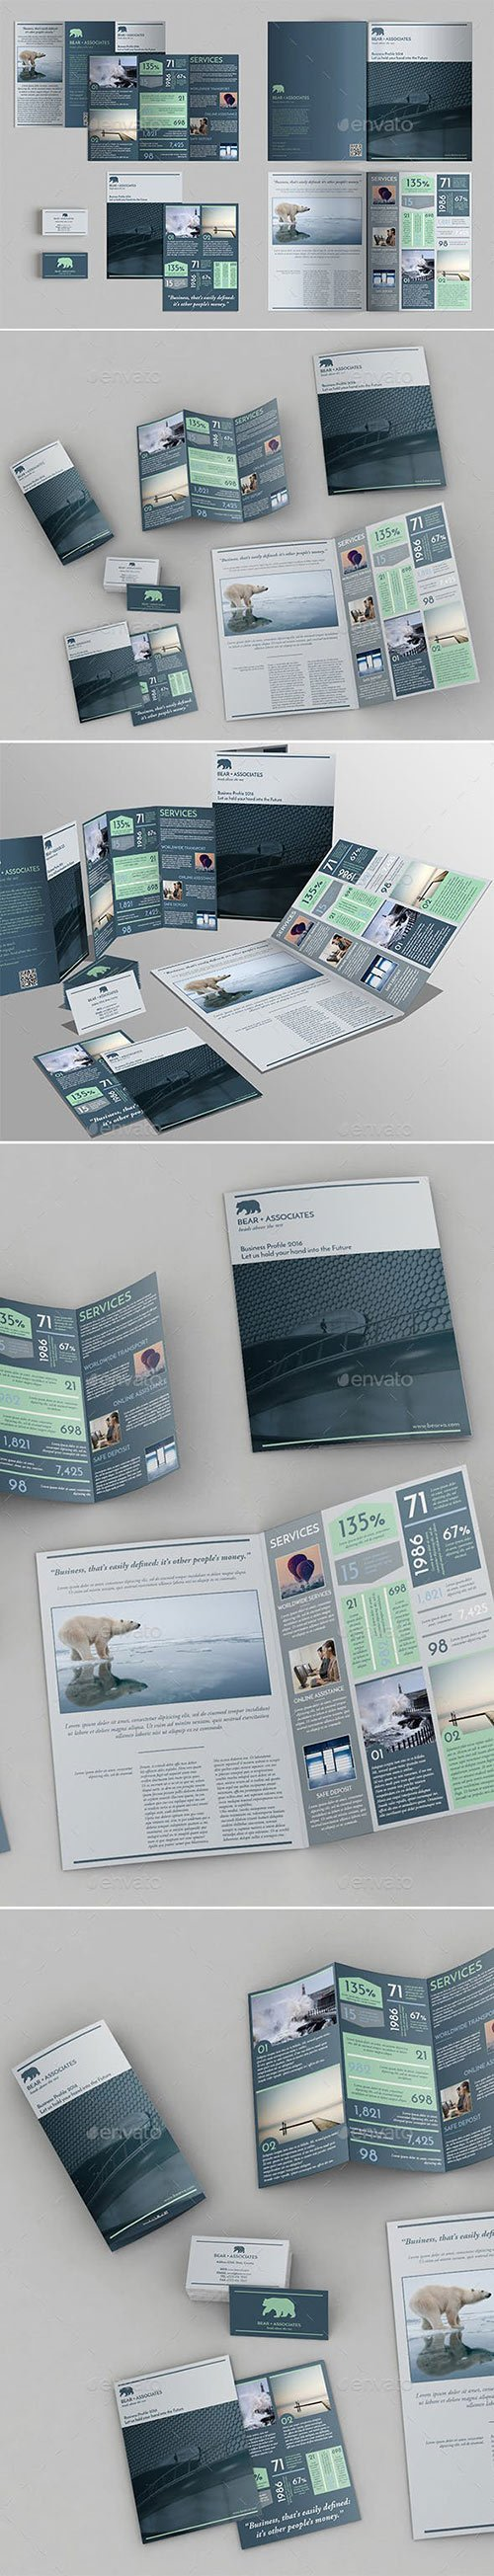 GraphicRiver - Set of Brochures Stationery Templates 23140515